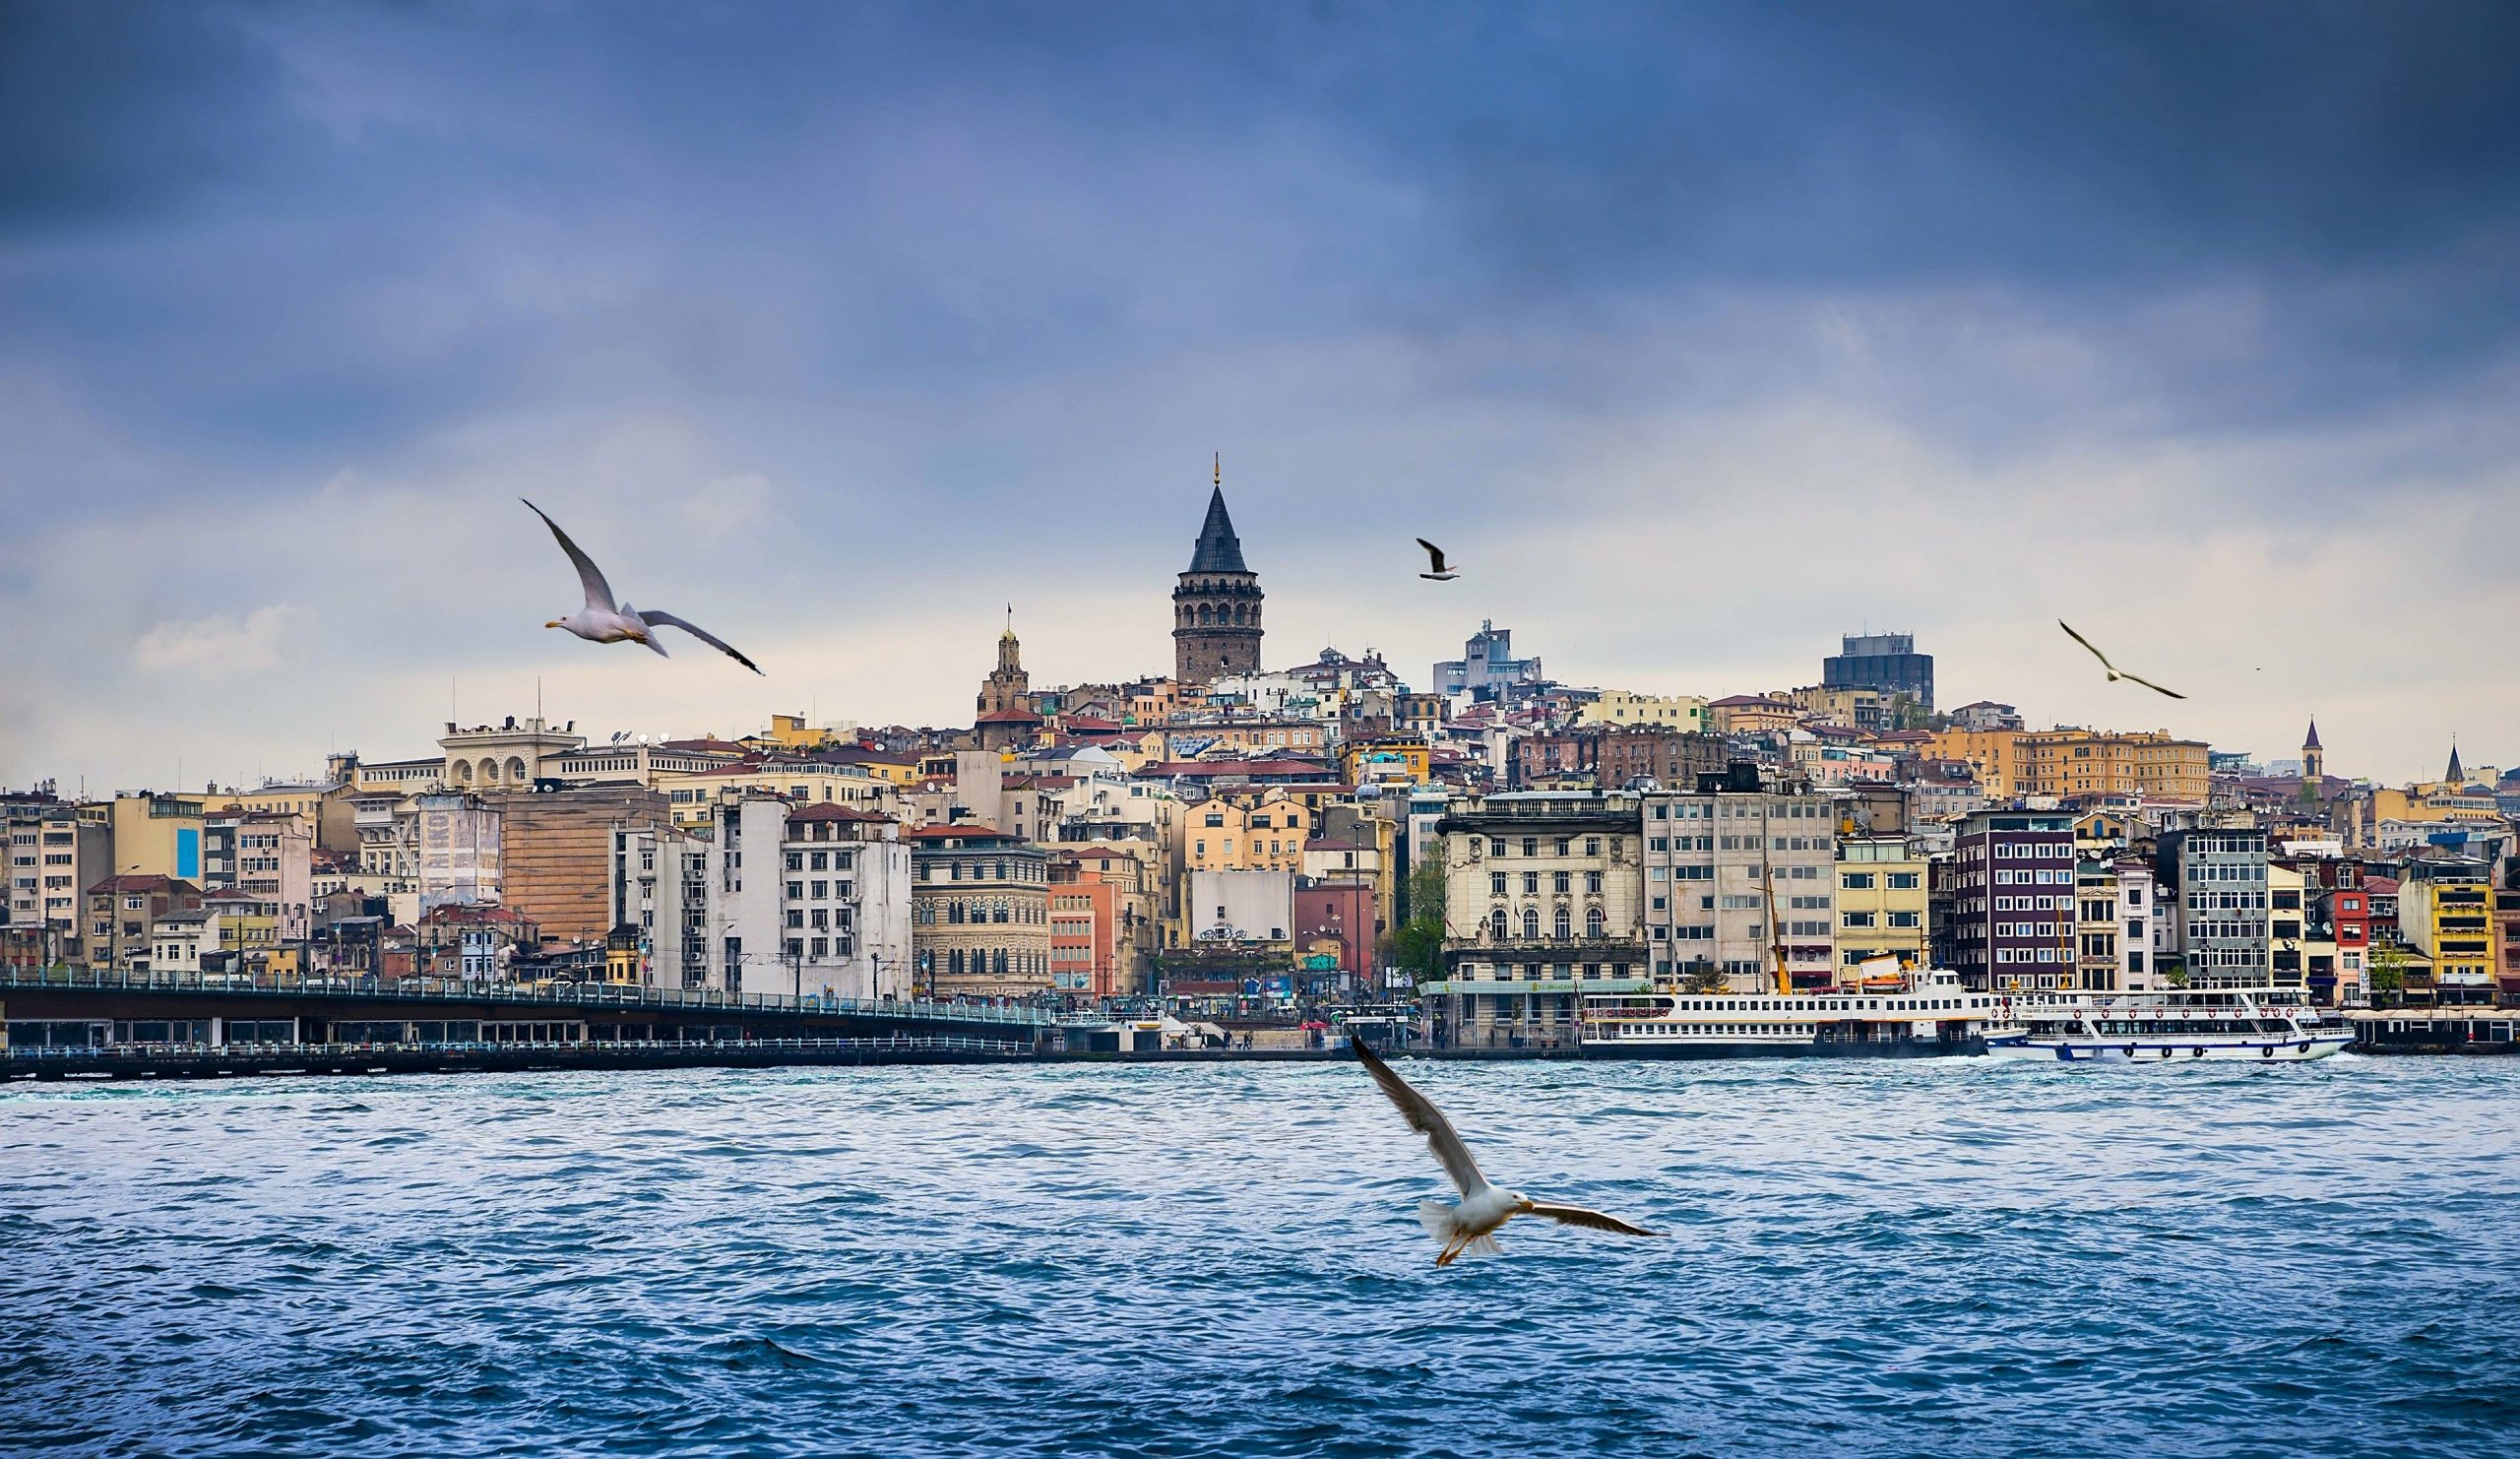 Luxury Property For Sale In Istanbul- Everything You Need To Know